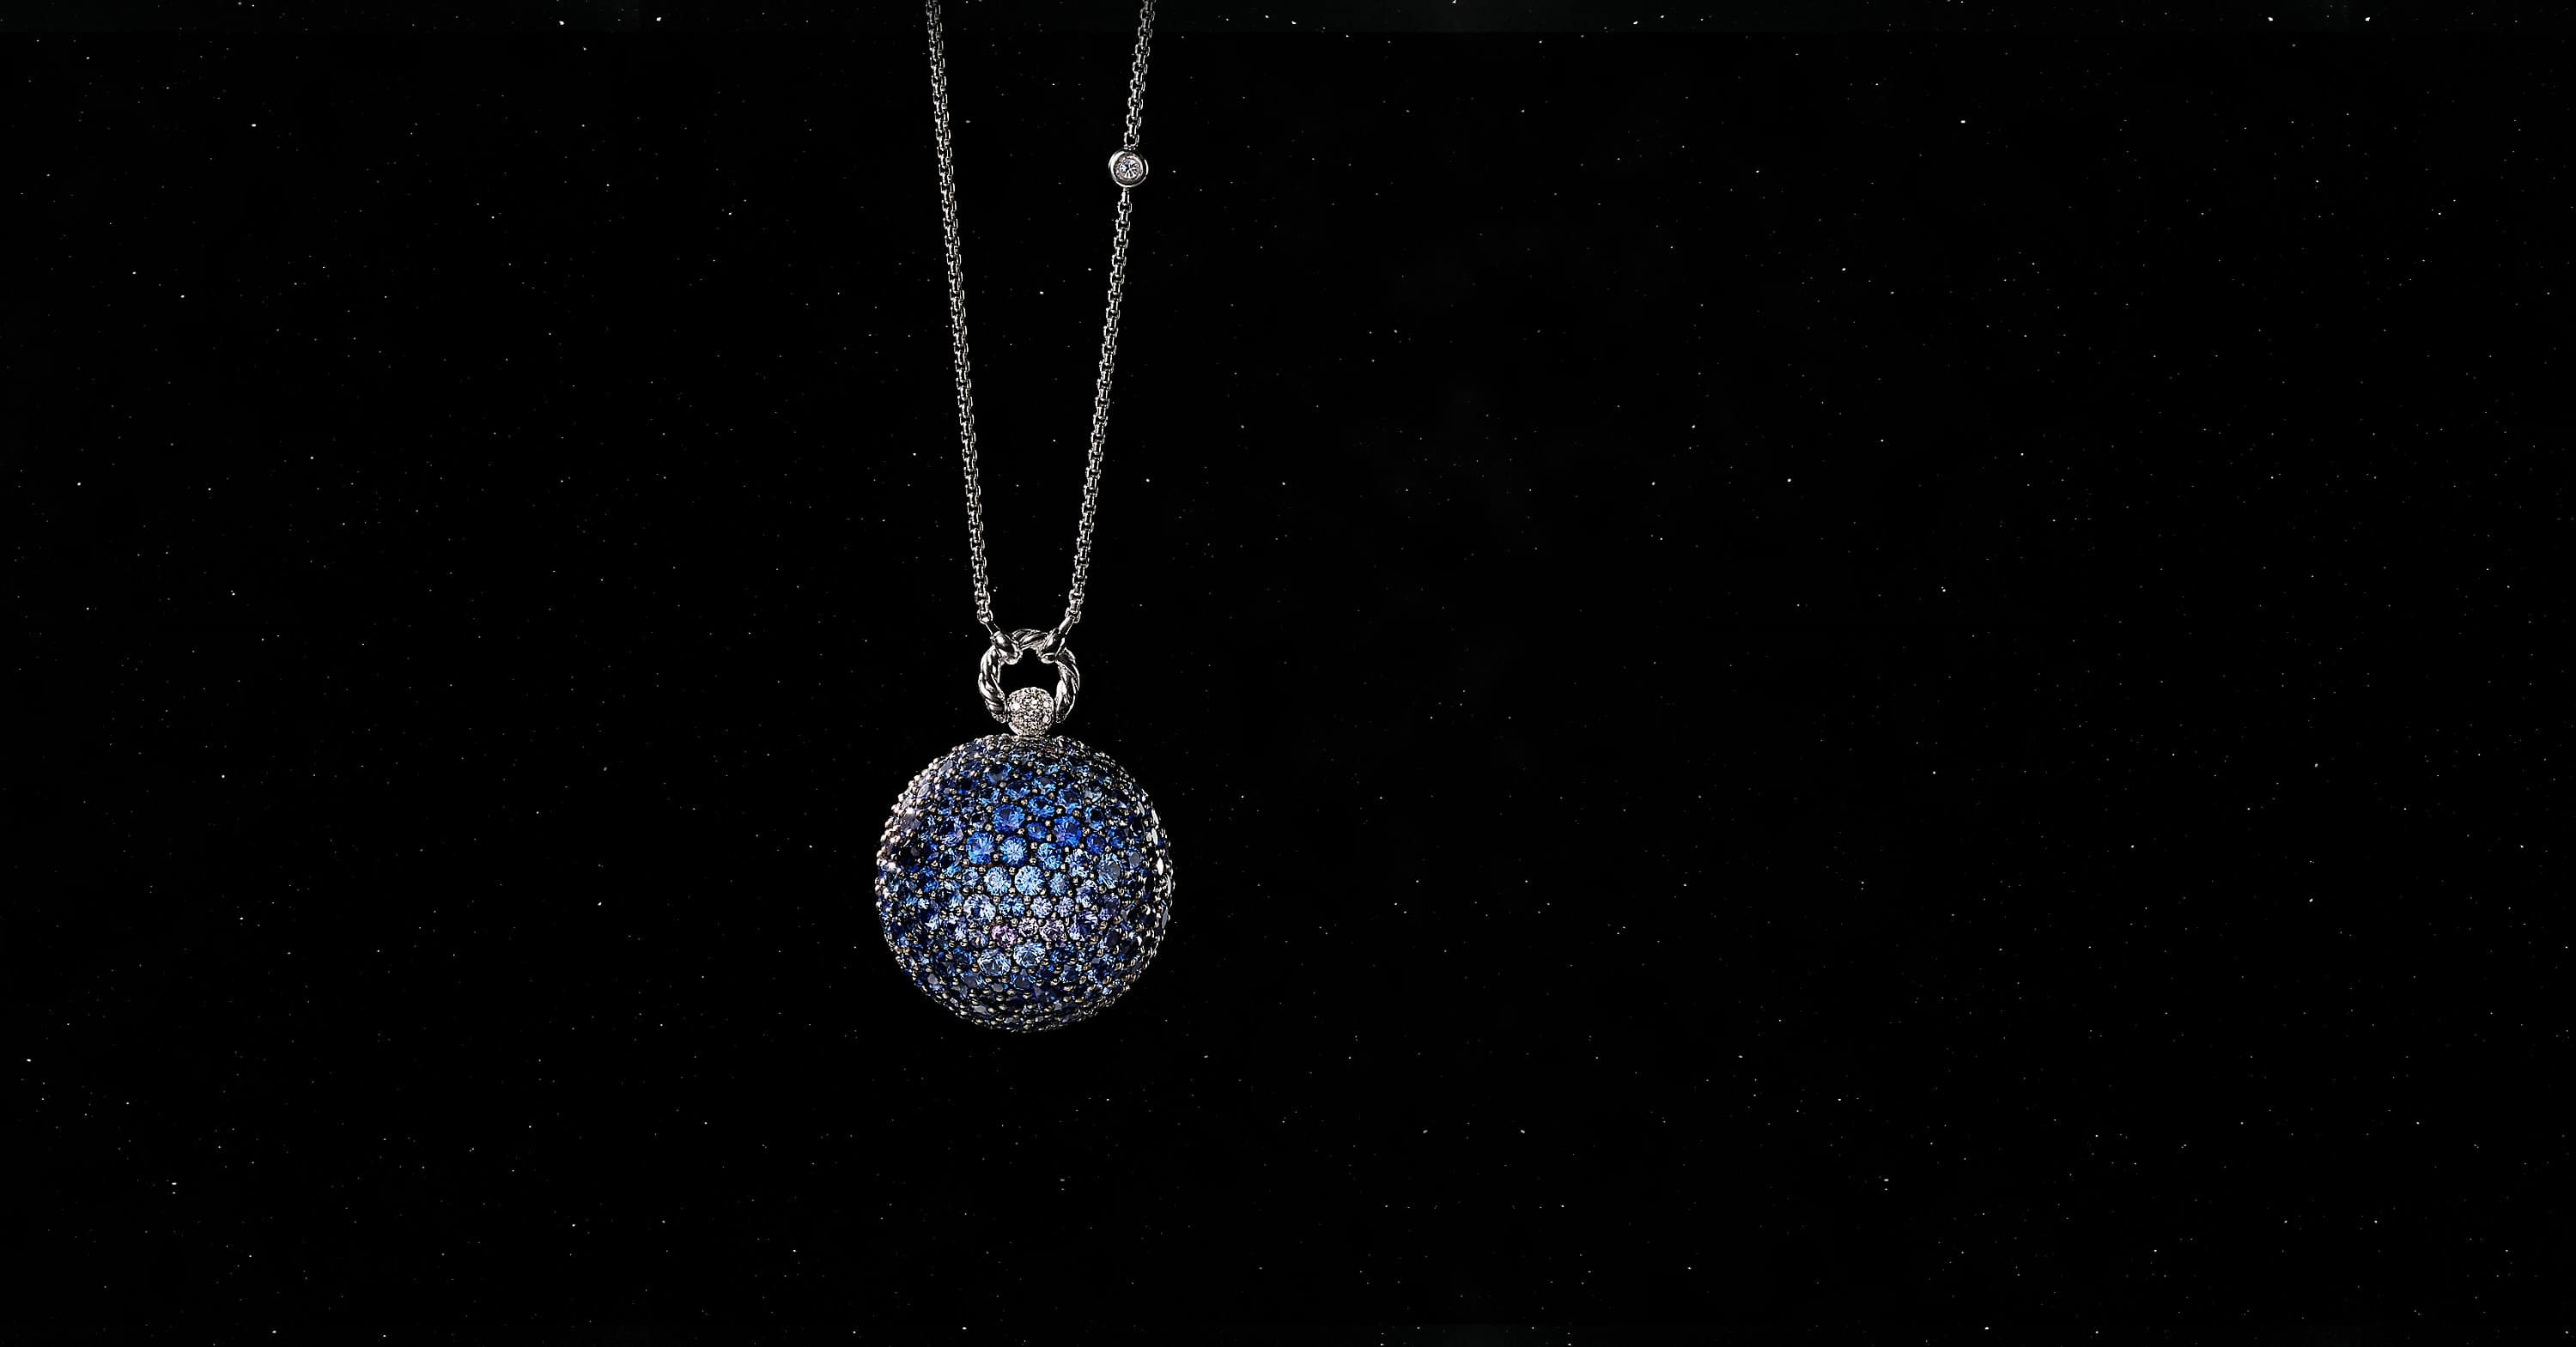 Solari Neptune Pendant Necklace in 18K White Gold with Pavé